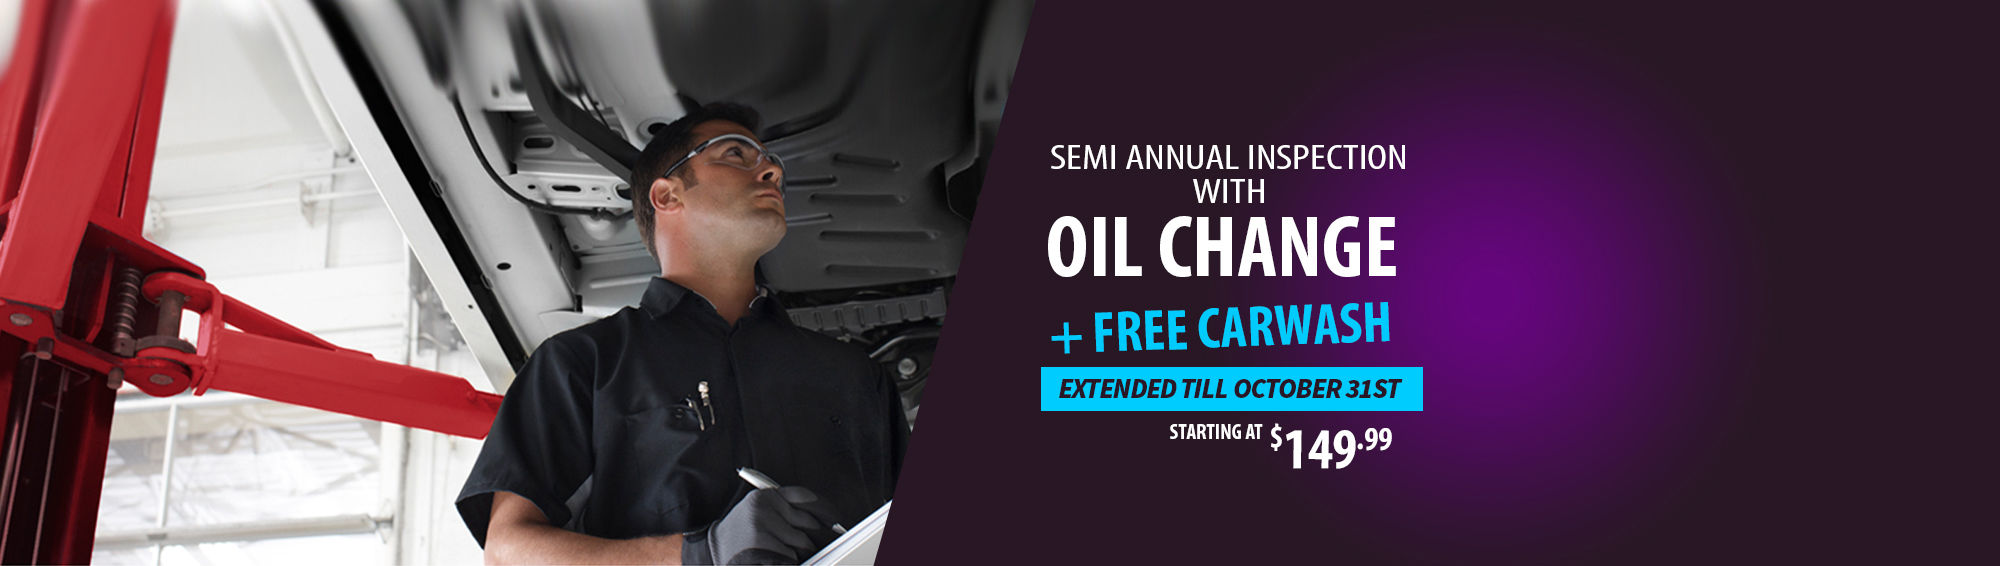 Semi Annual Inspection with Oil Change (Web)